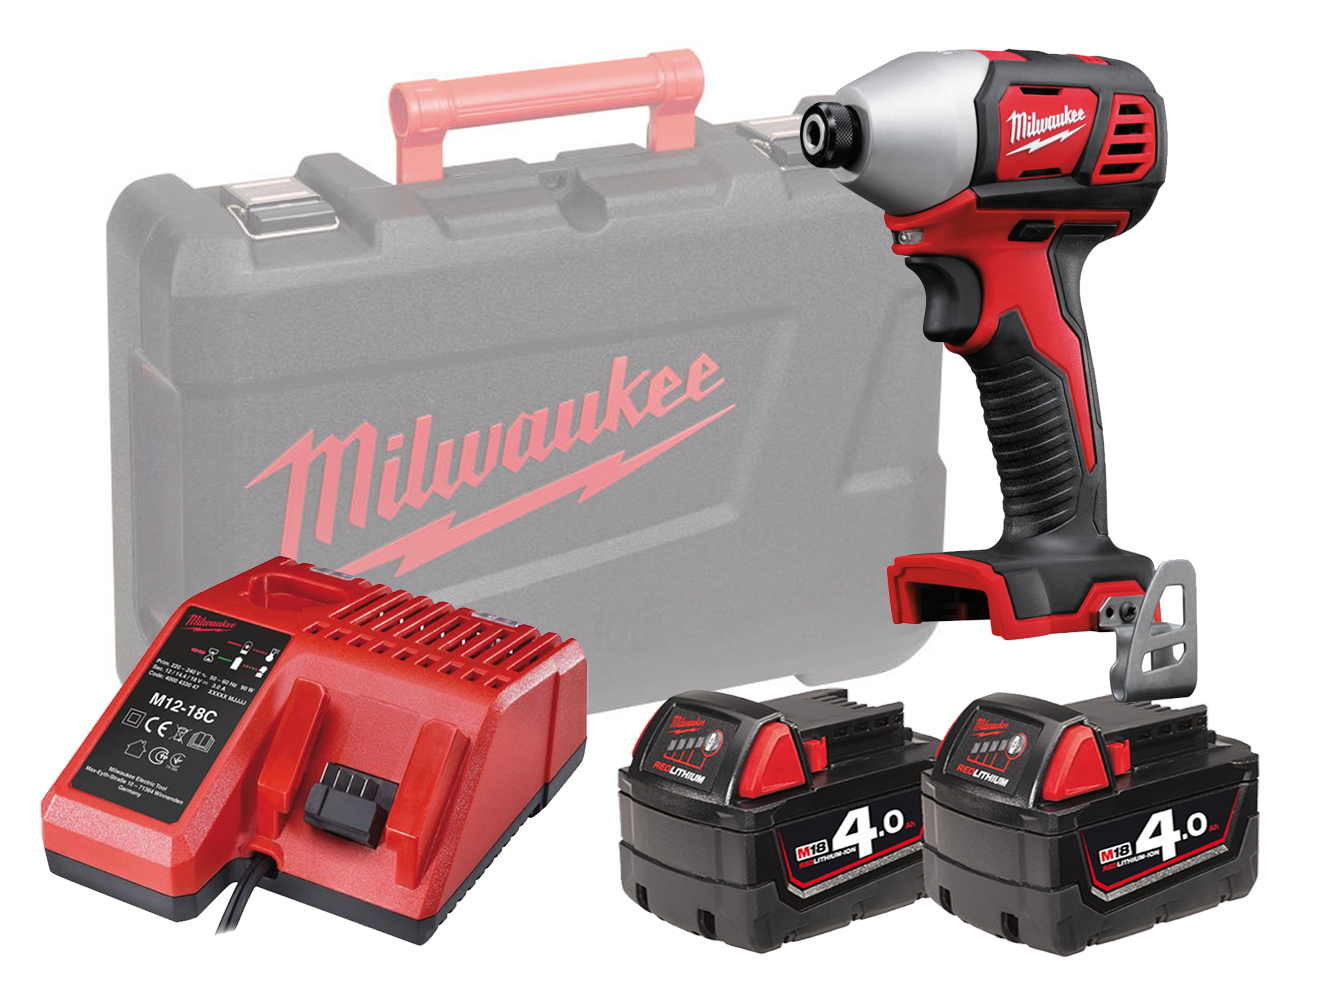 MILWAUKEE 18V BRUSHED IMPACT DRIVER - M18BID - 4.0AH PACK